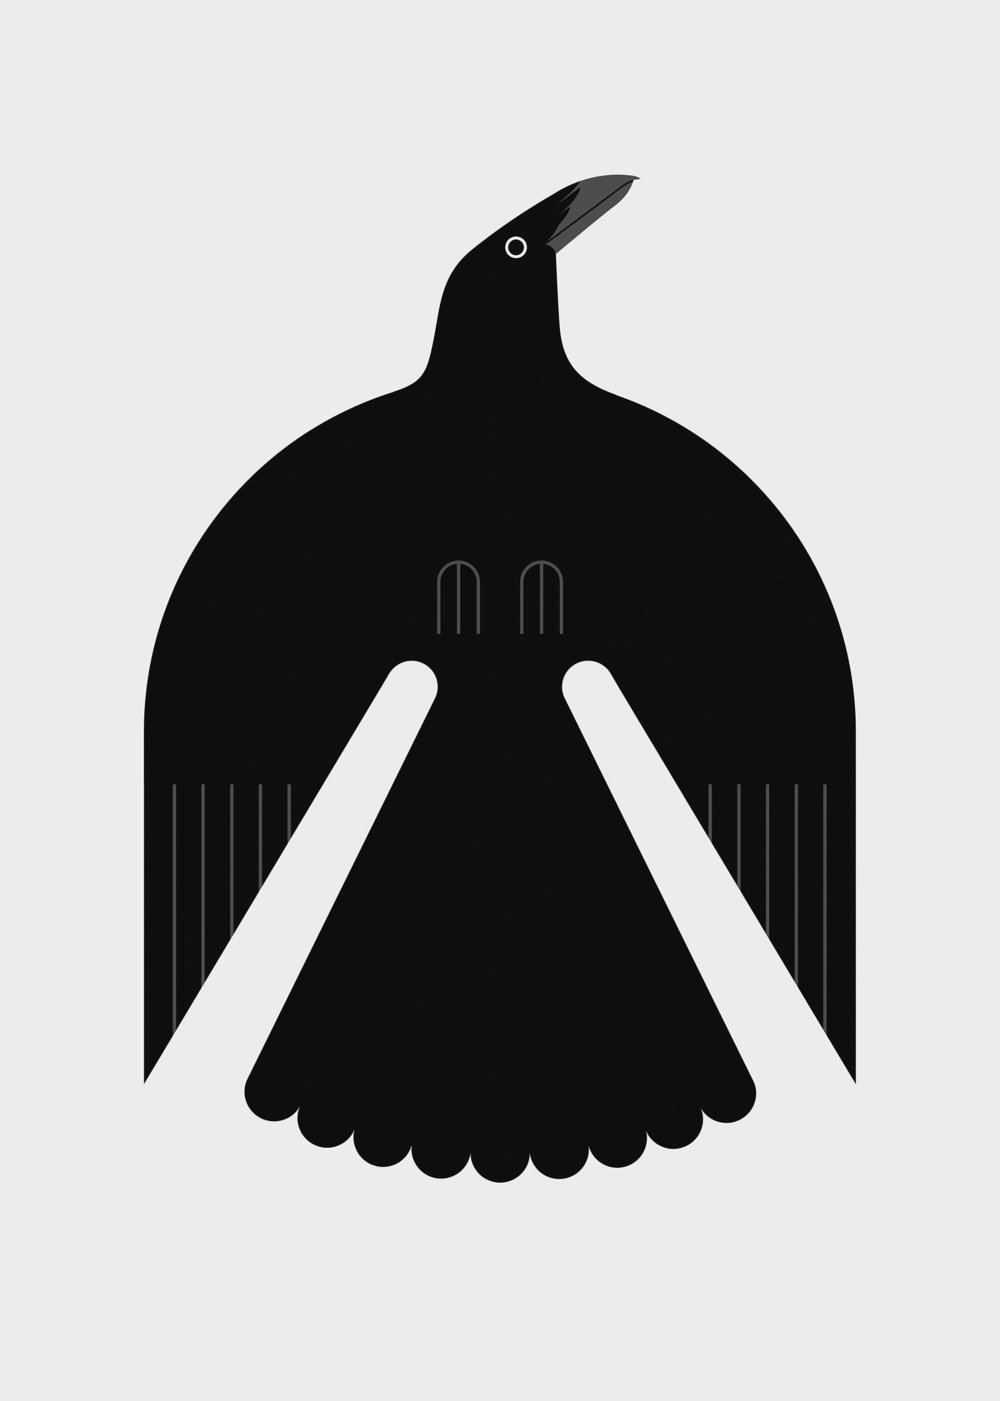 Crow-Game-of-Thrones-Animal-Bird-Illustration-Owen-Davey_1600_c.jpg